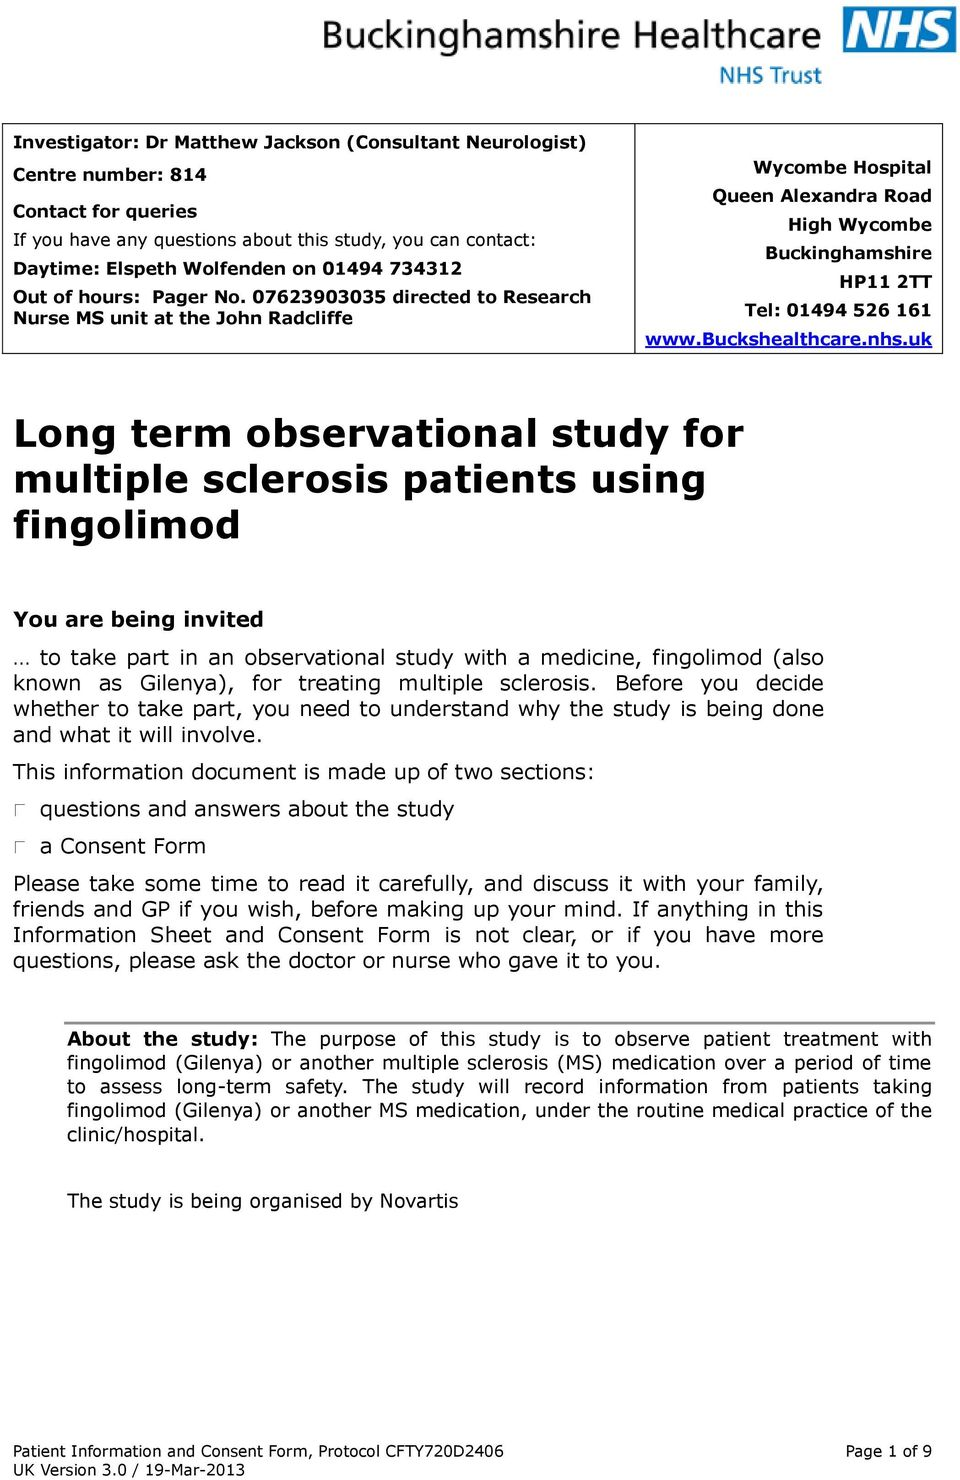 Long term observational study for multiple sclerosis